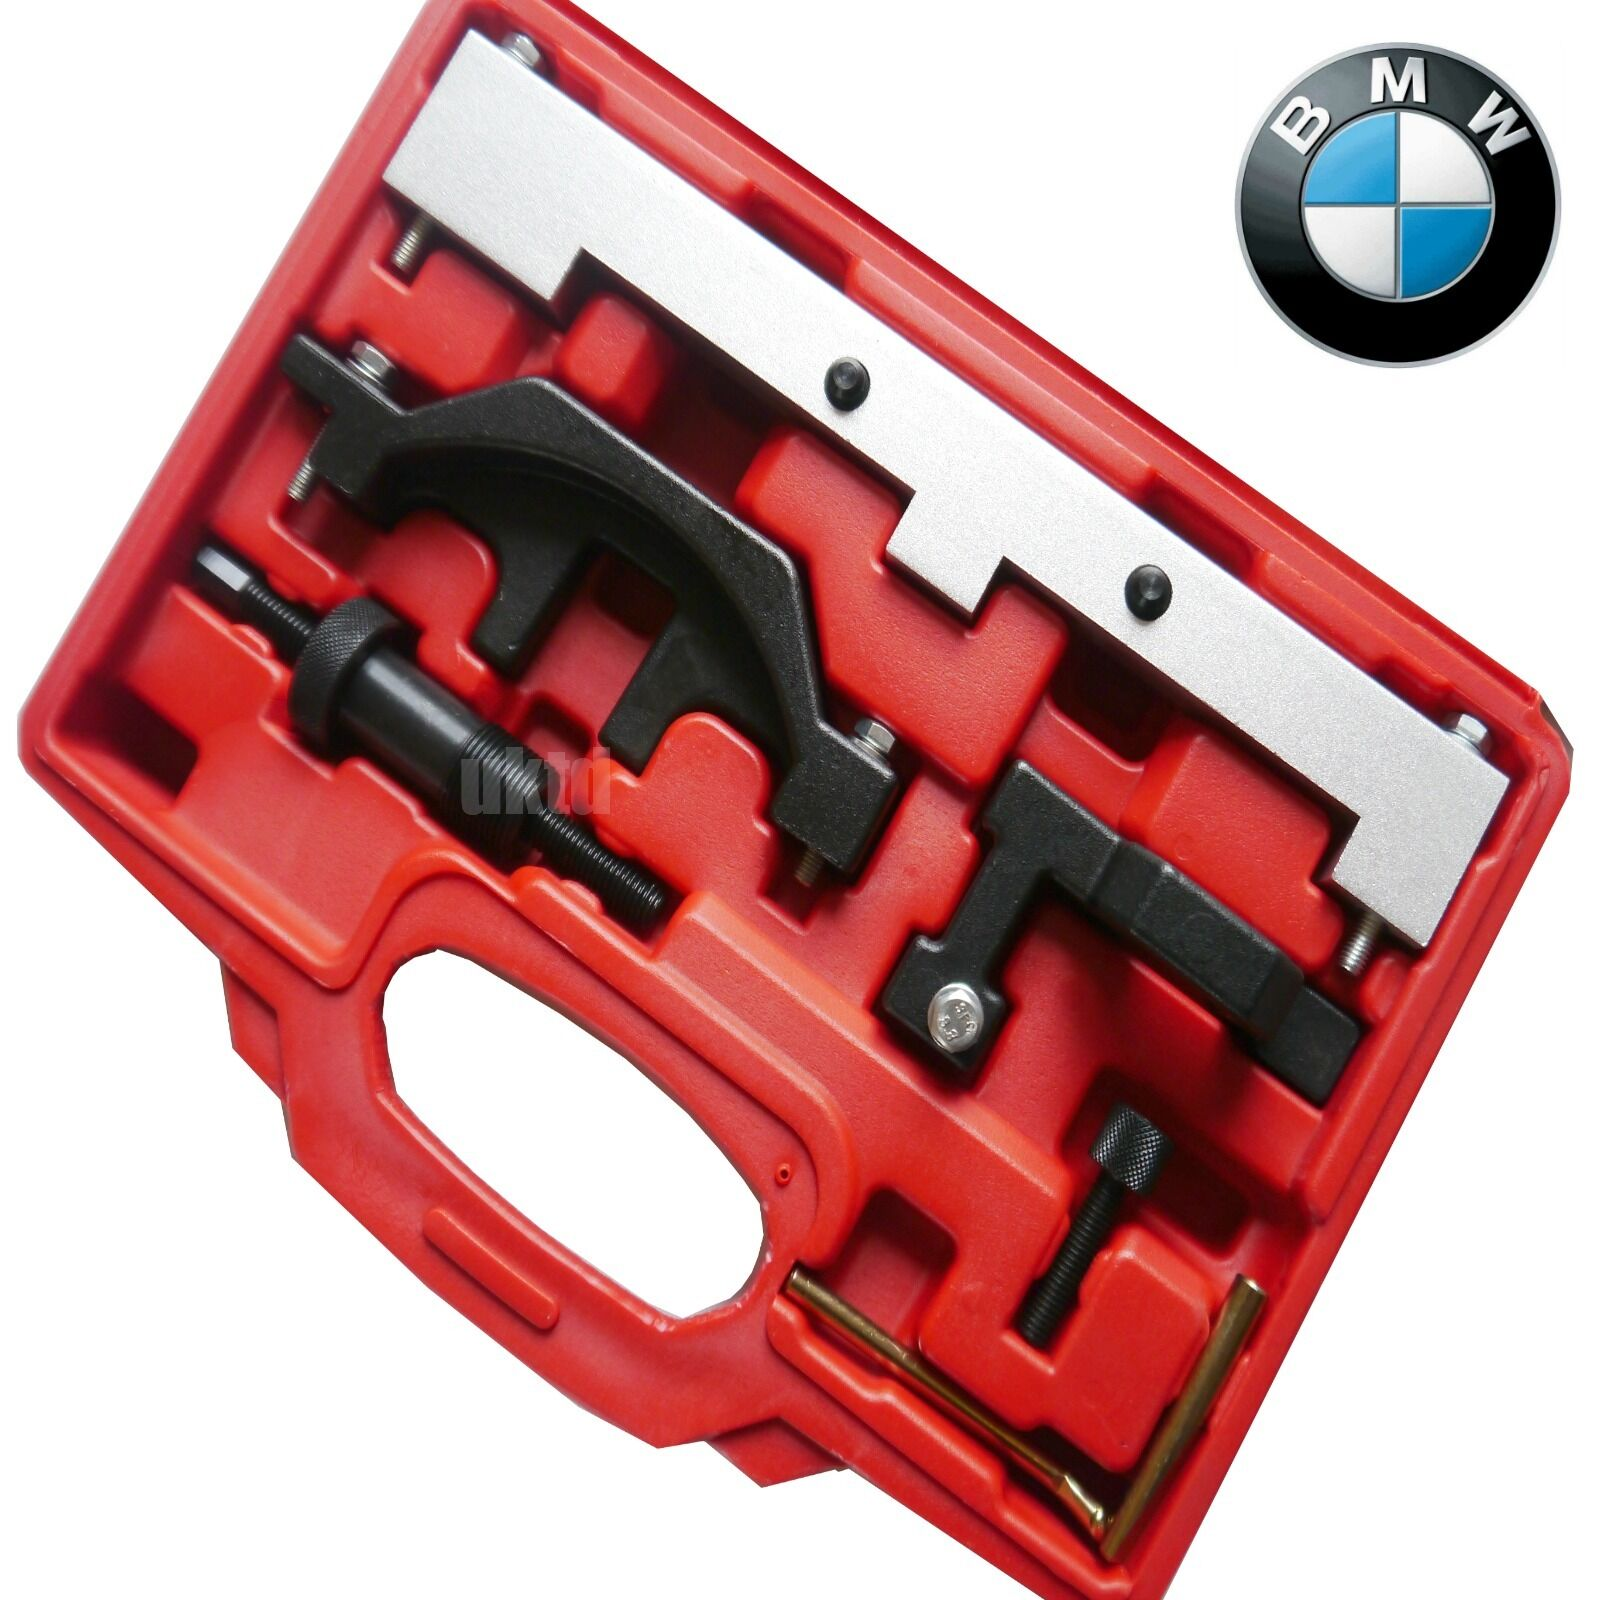 Vw 1600 Engine Removal: BMW Timing Setting Locking Tool Set Kit N40 N45 N45T 116i